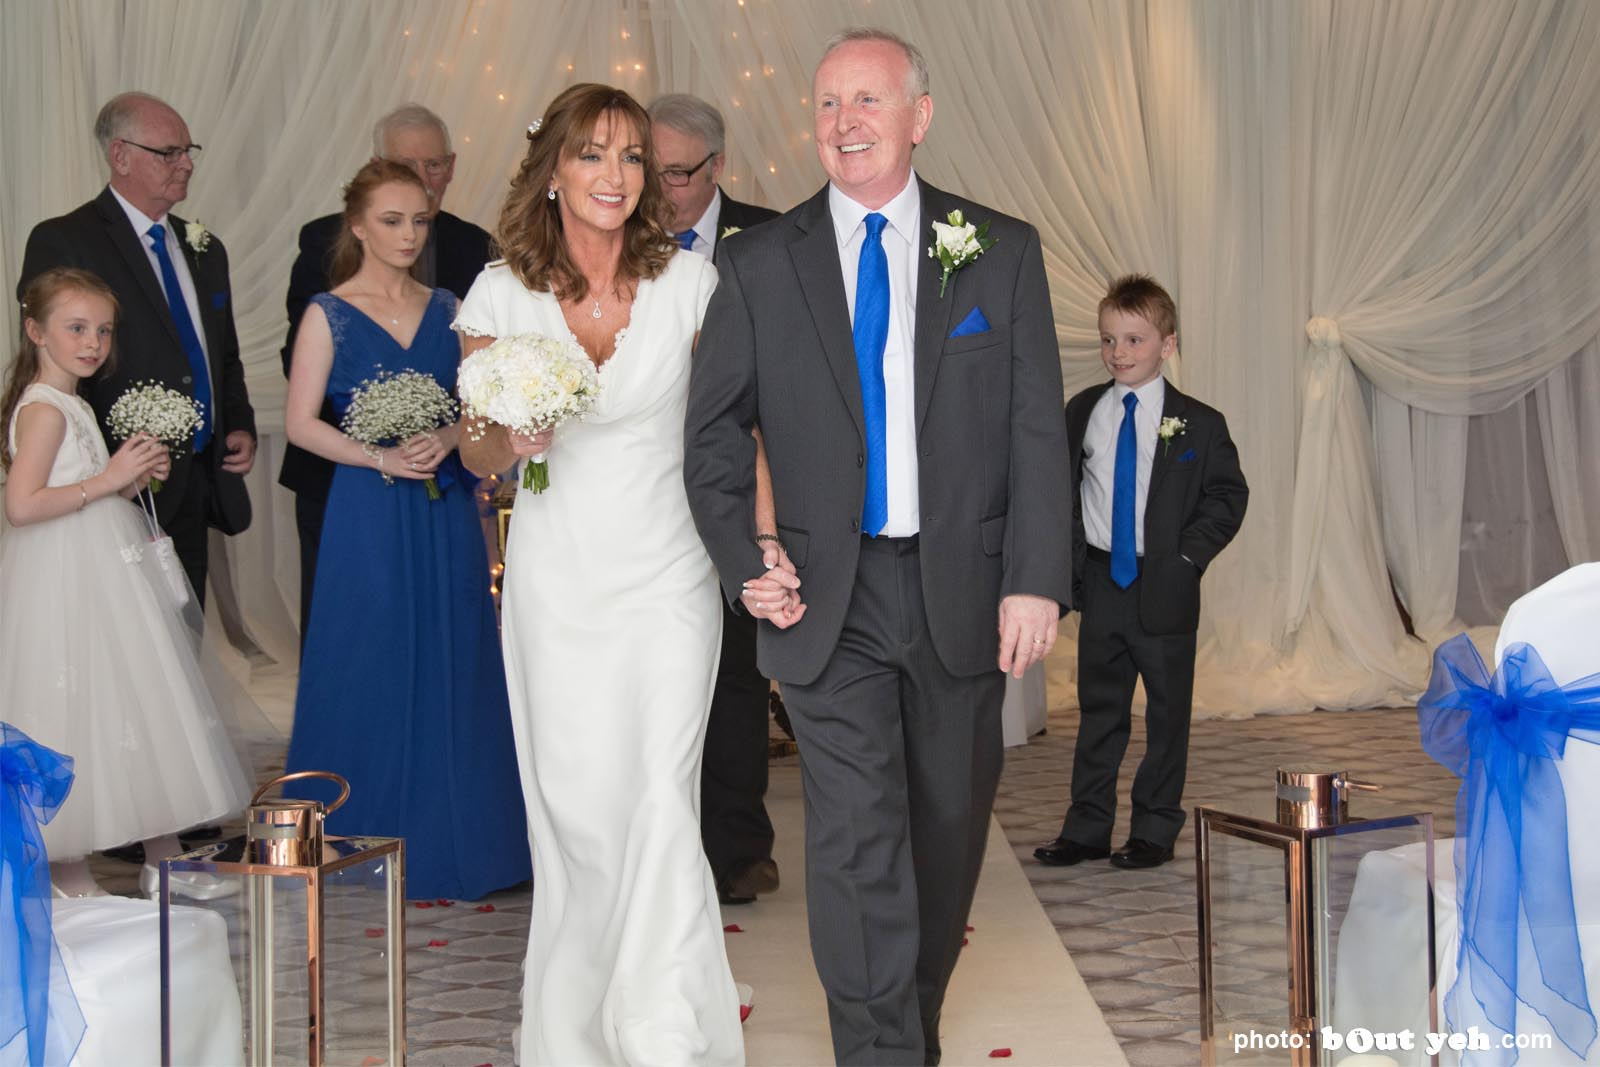 Michael and Annette's wedding photographed by Bout Yeh wedding photographers and video services Belfast and Northern Ireland. Photo 5959